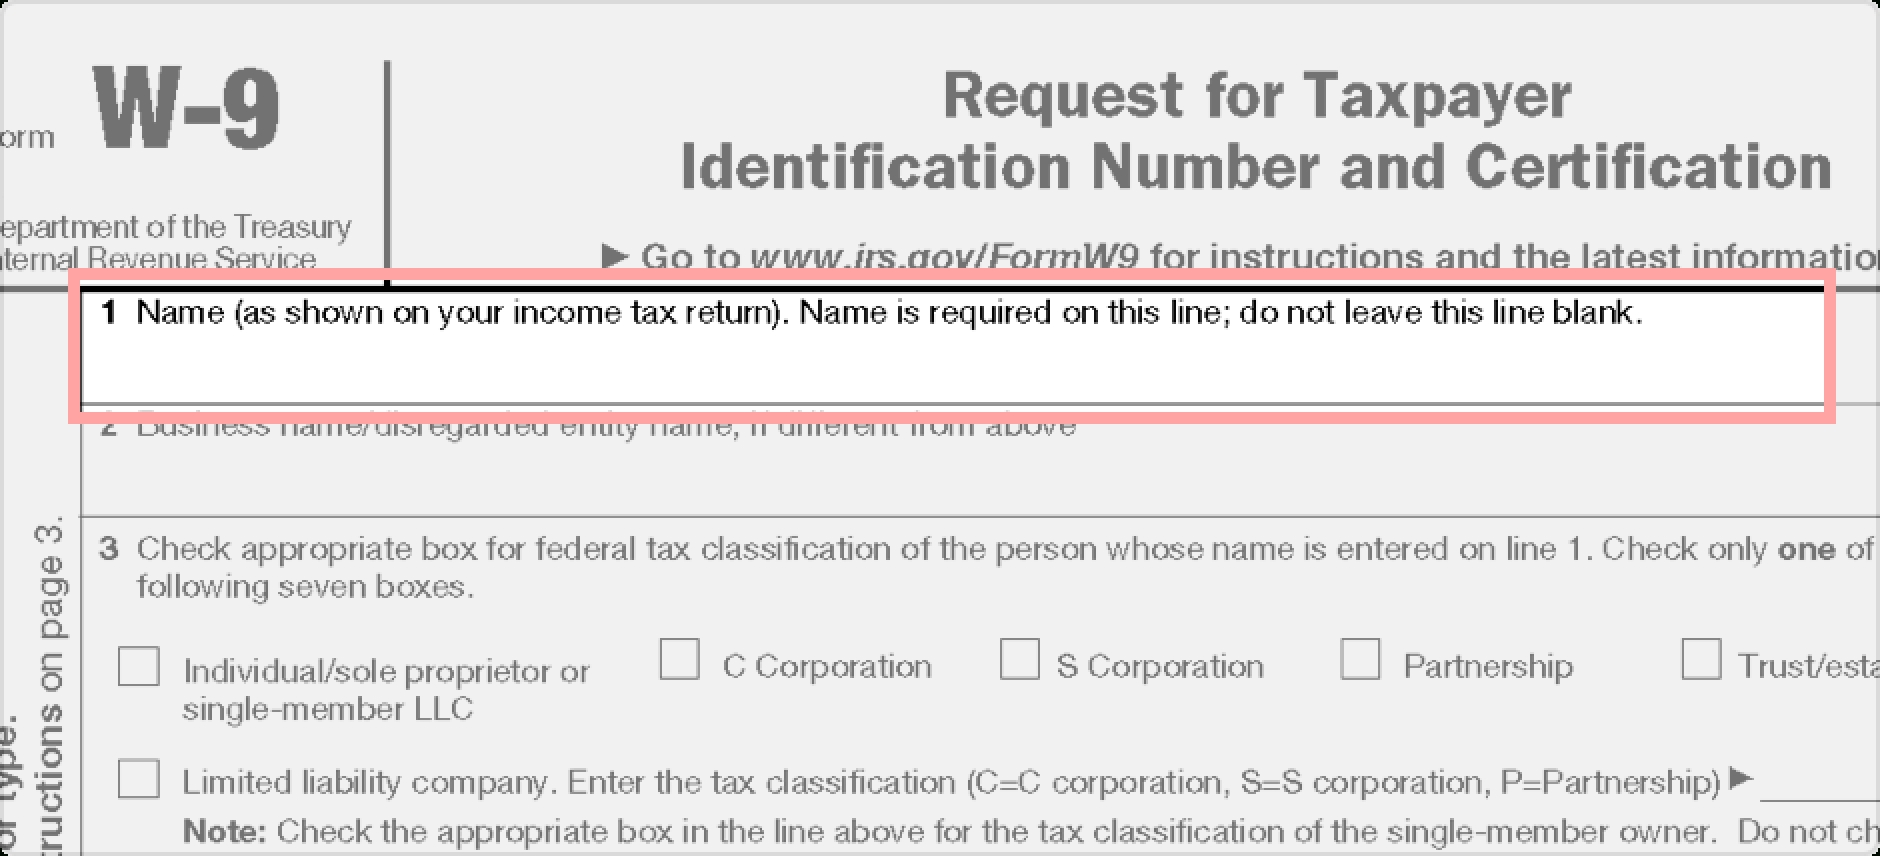 W-9 Form: Fillable, Printable, Download Free. 2019 Instructions-Blank W 9 Form 2020 Printable